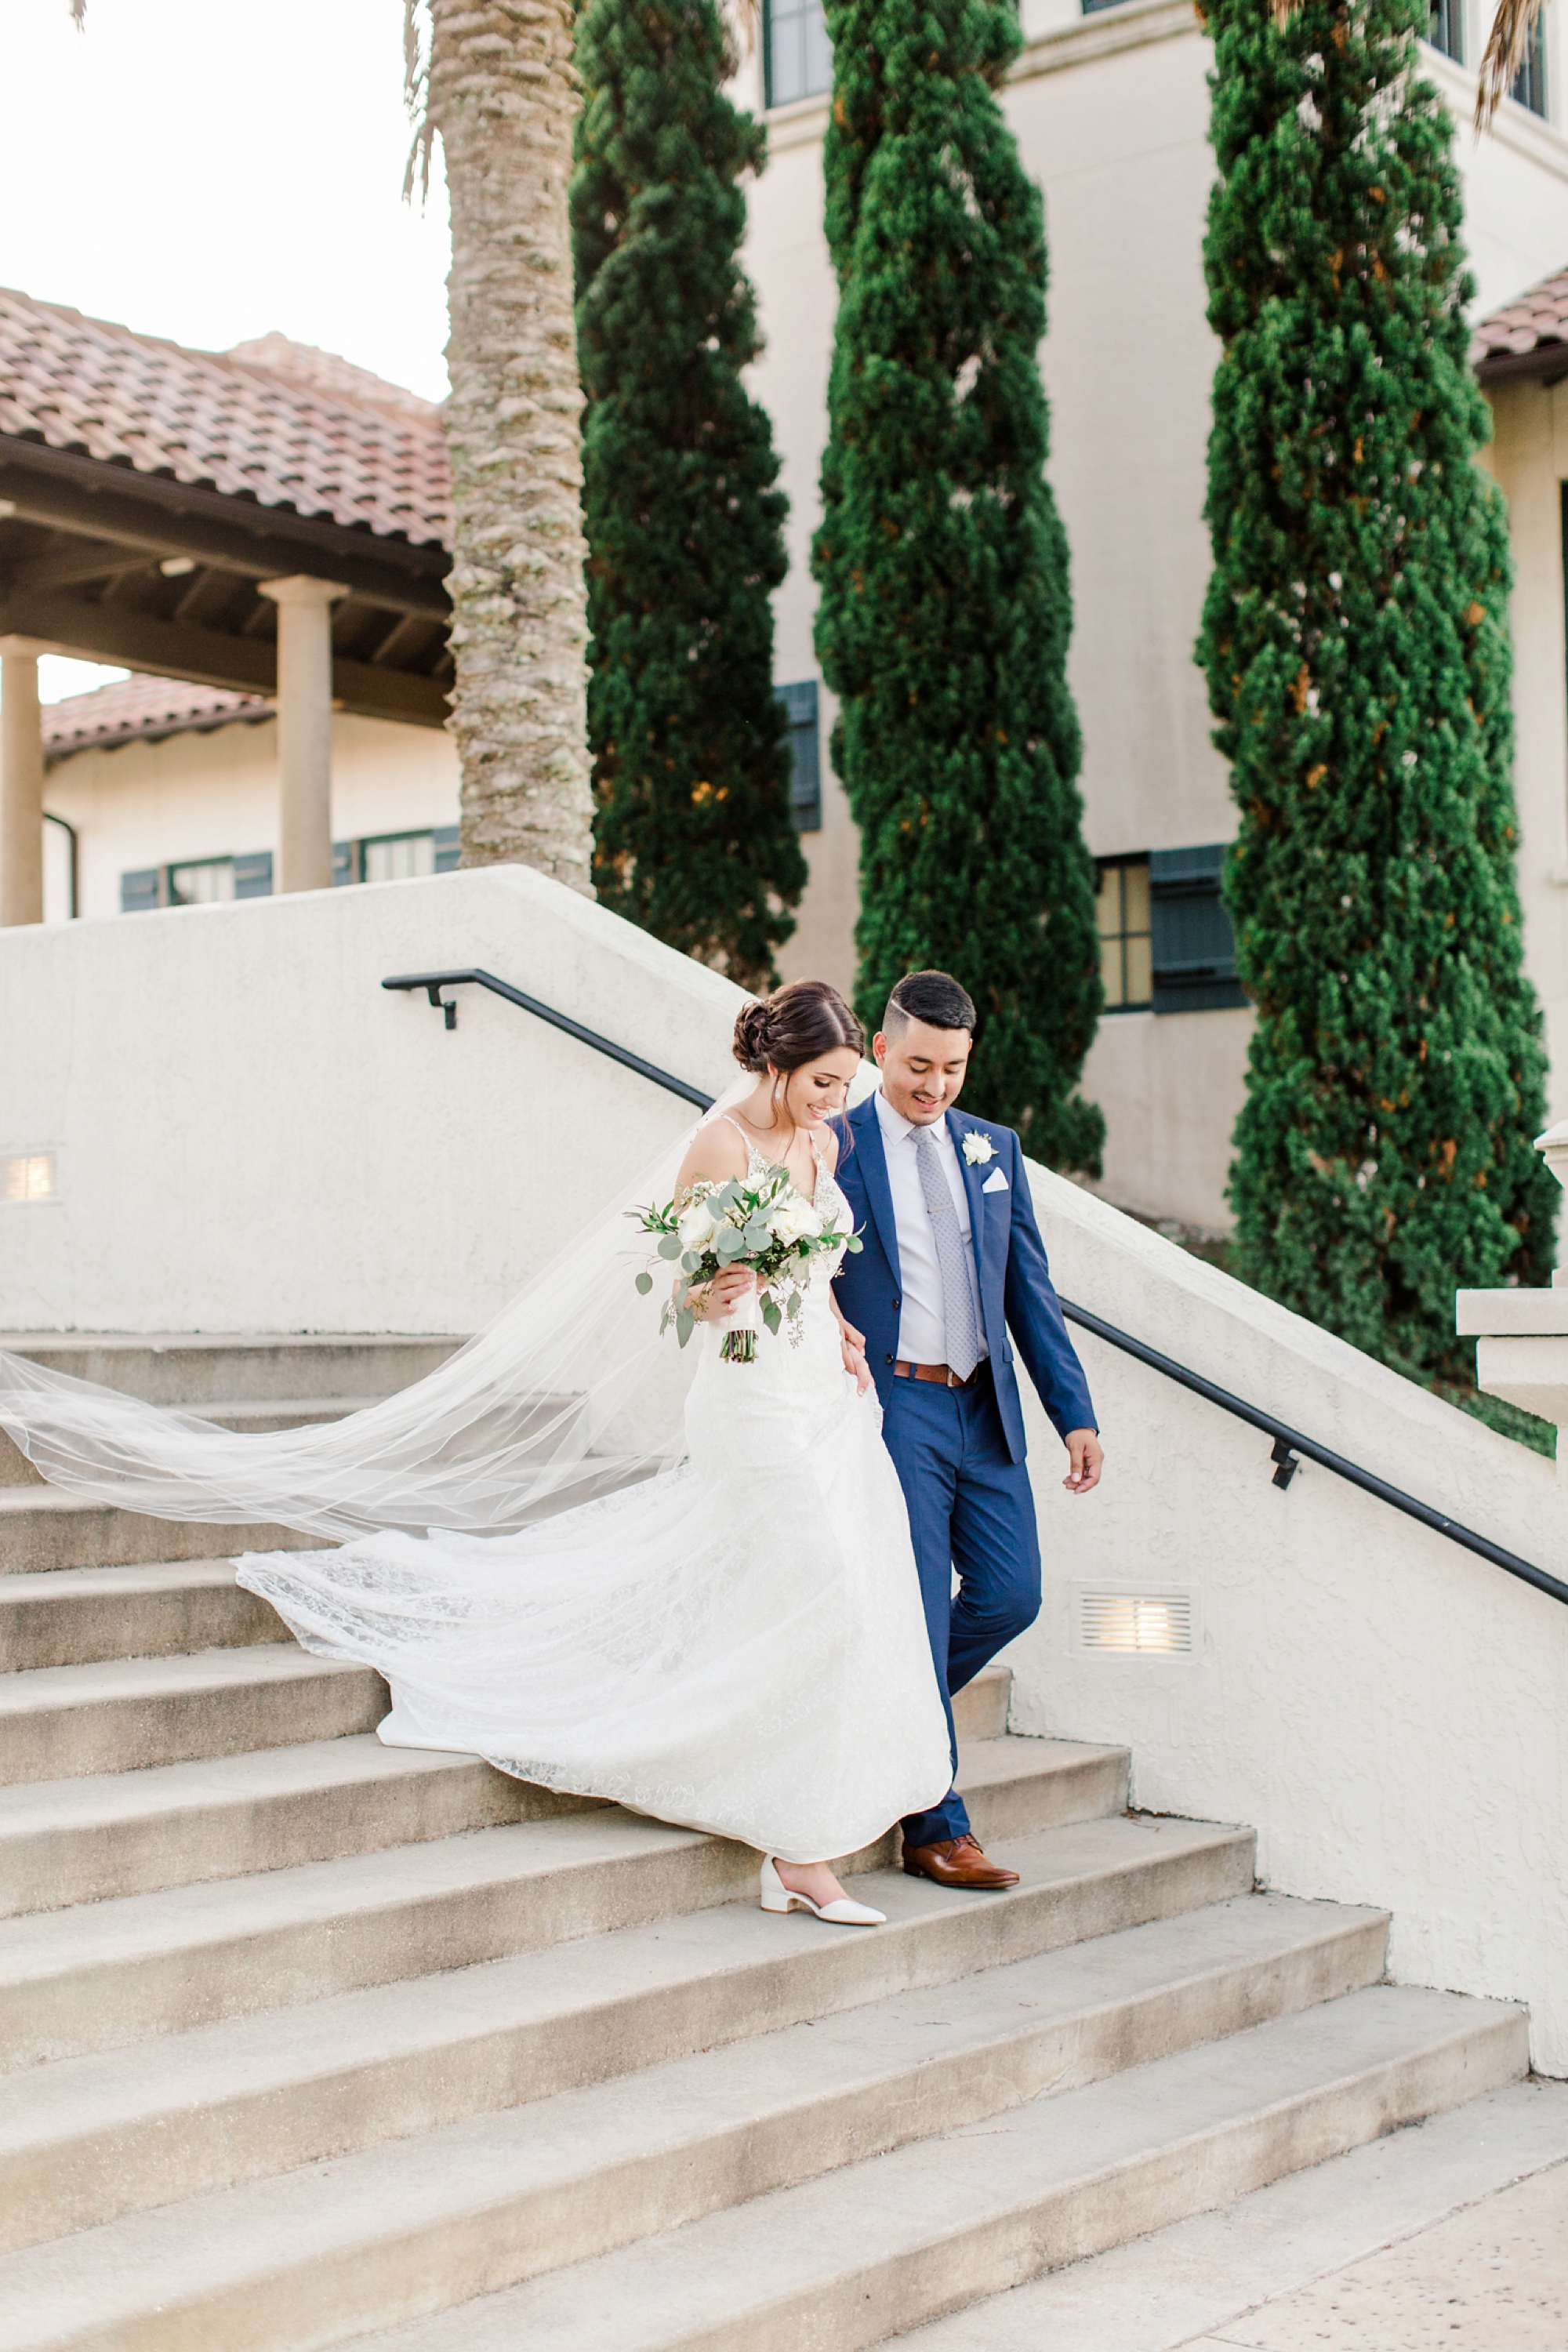 Natalie Broach Photography | Riano Wedding | Palencia Club Wedding | Jacksonville Florida Wedding Photographer |Bride and Groom